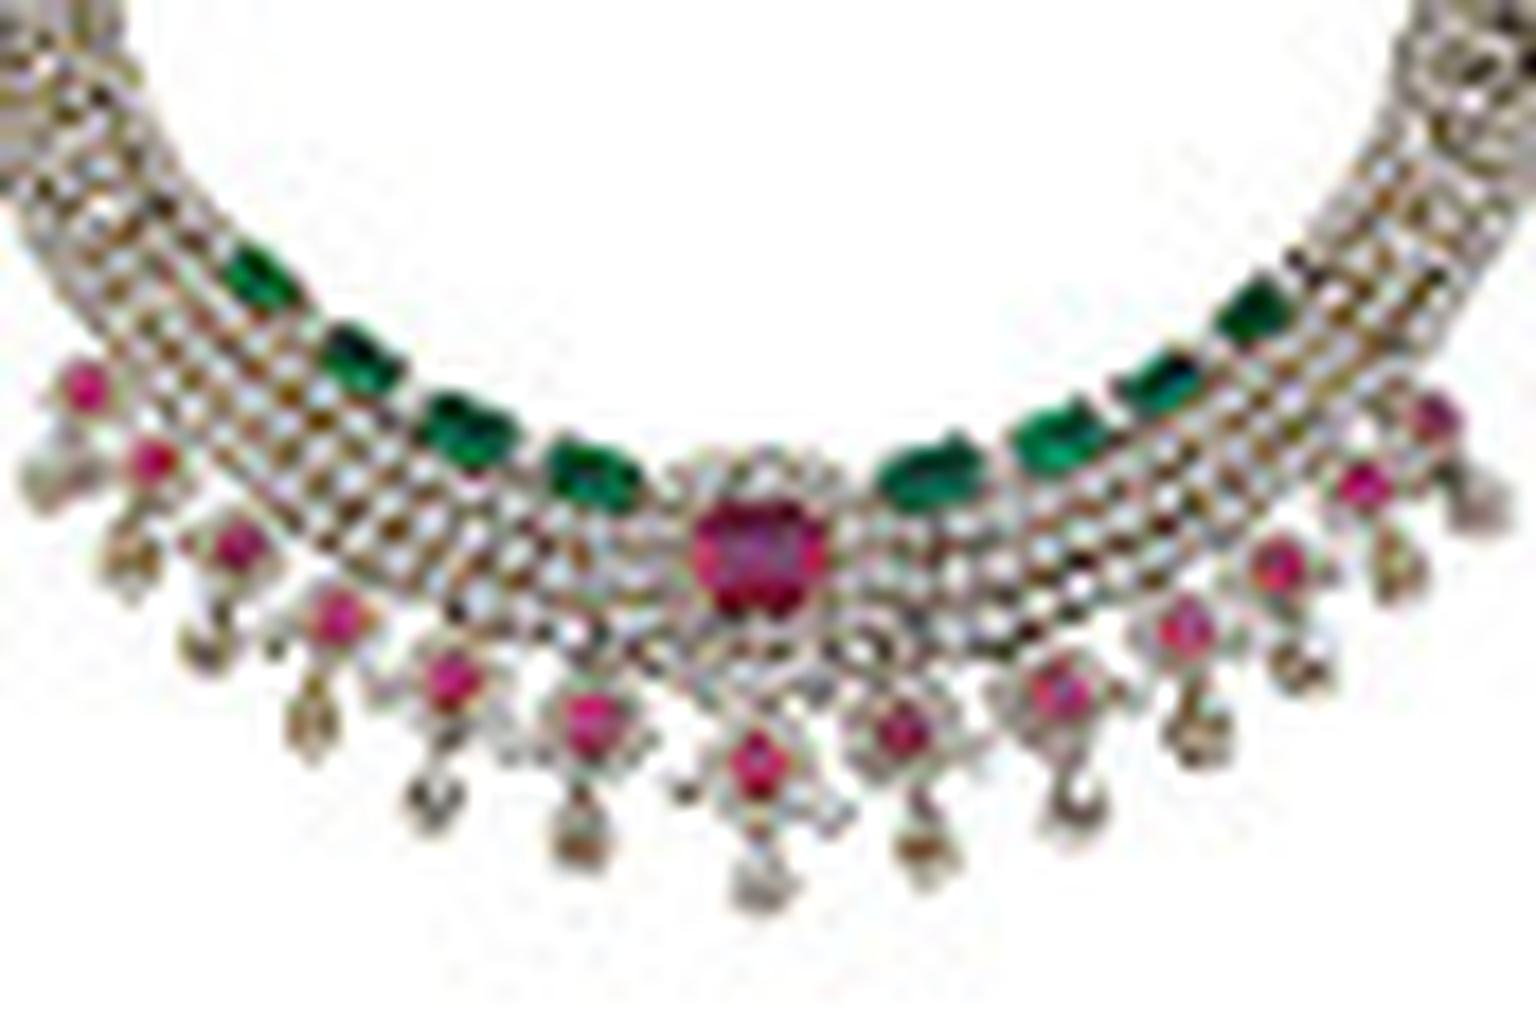 Varuna D Jani necklace